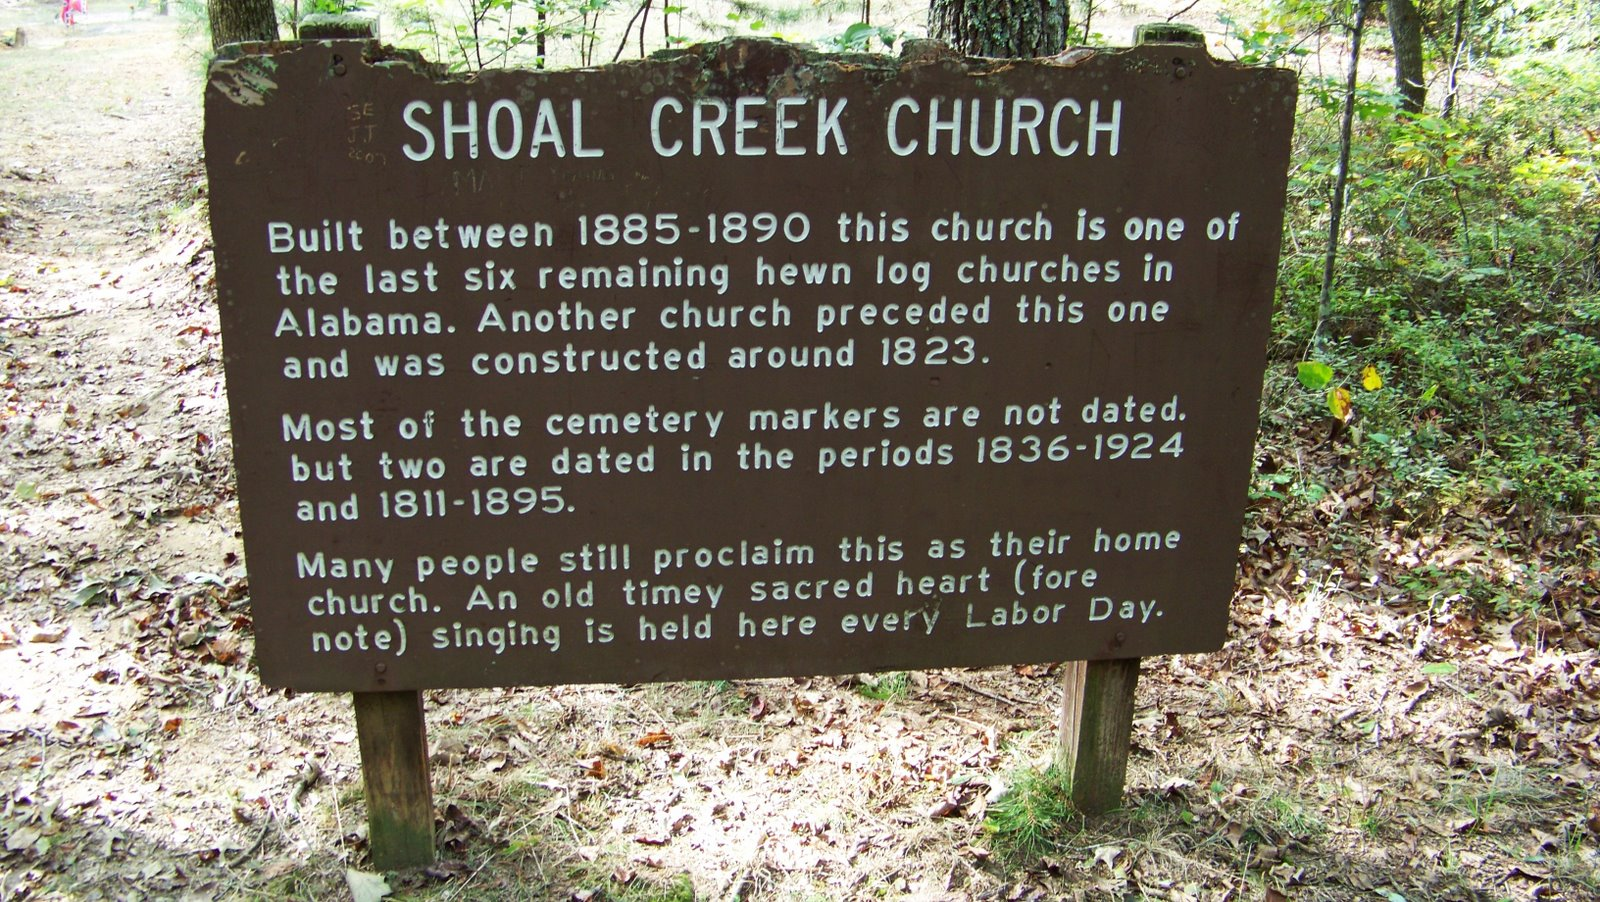 Shoal Creek Church